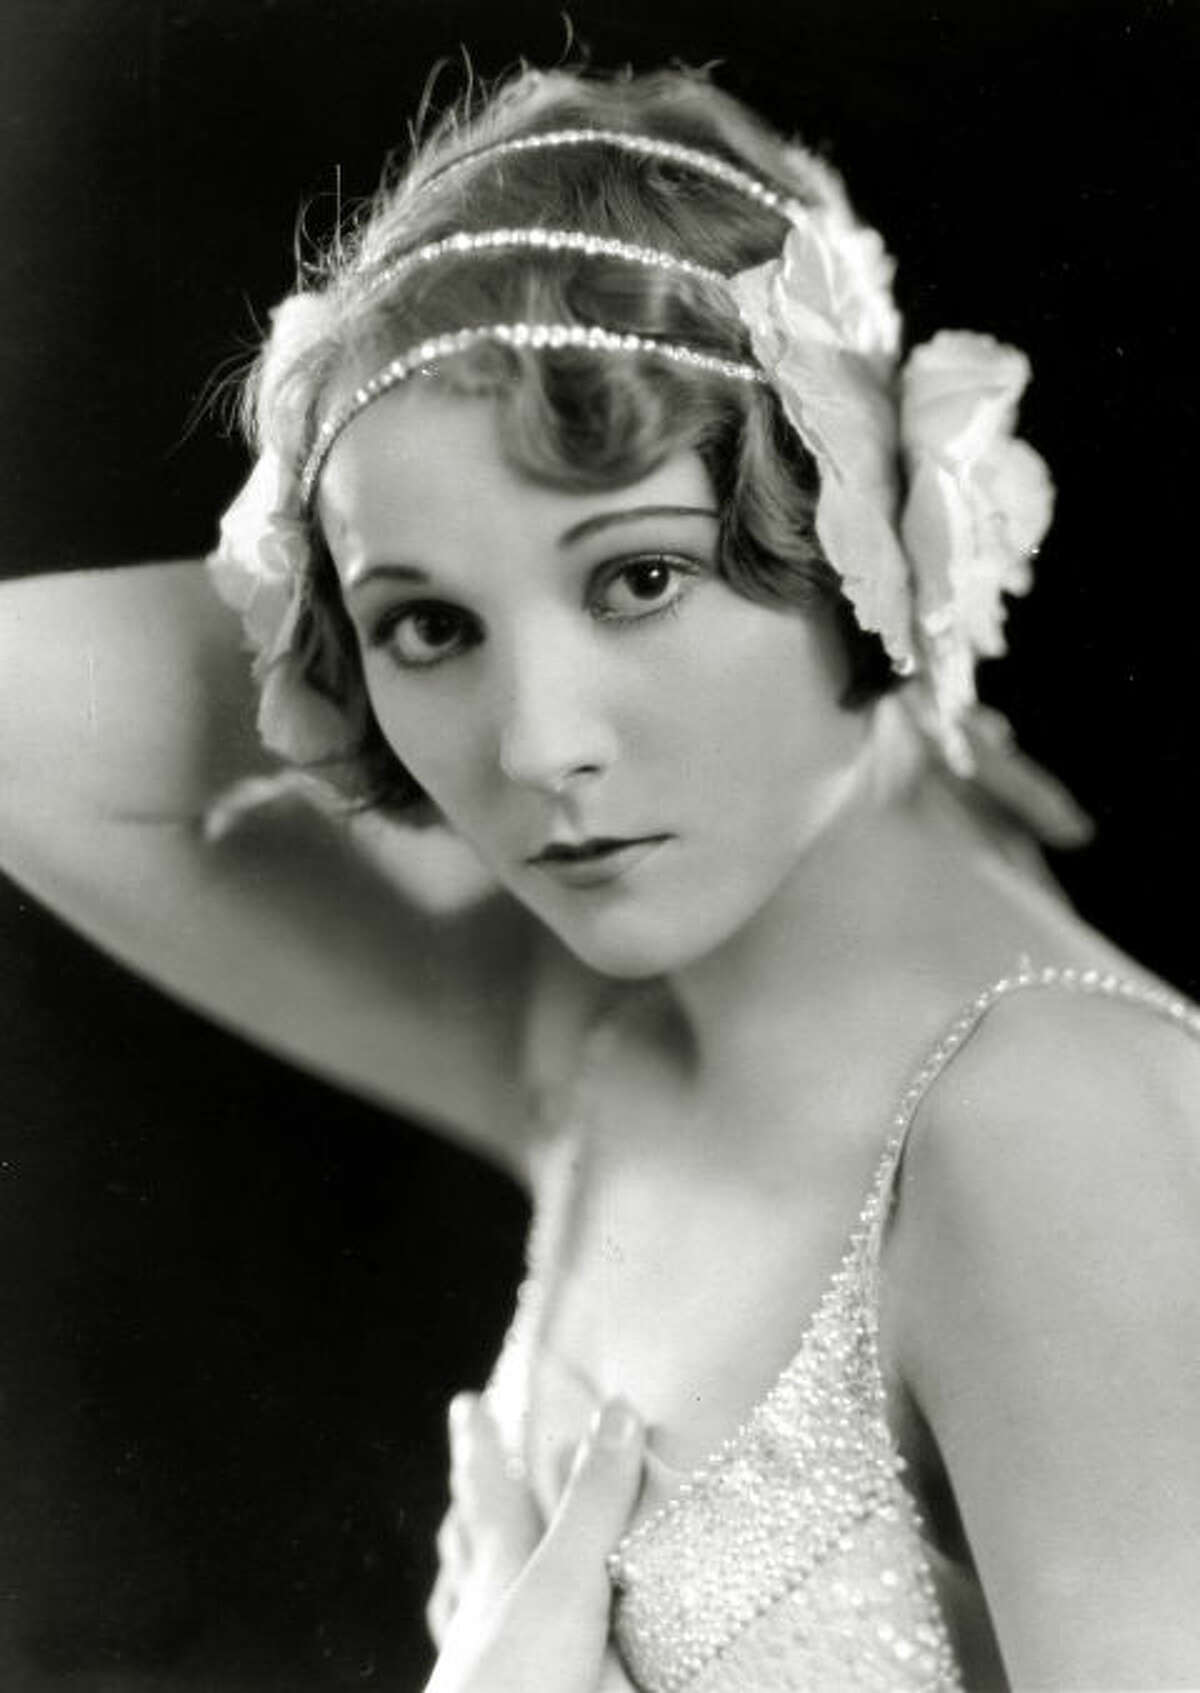 1926: Browband A thin, sometimes jeweled piece of fabric worn around the forehead, this style was dubbed the